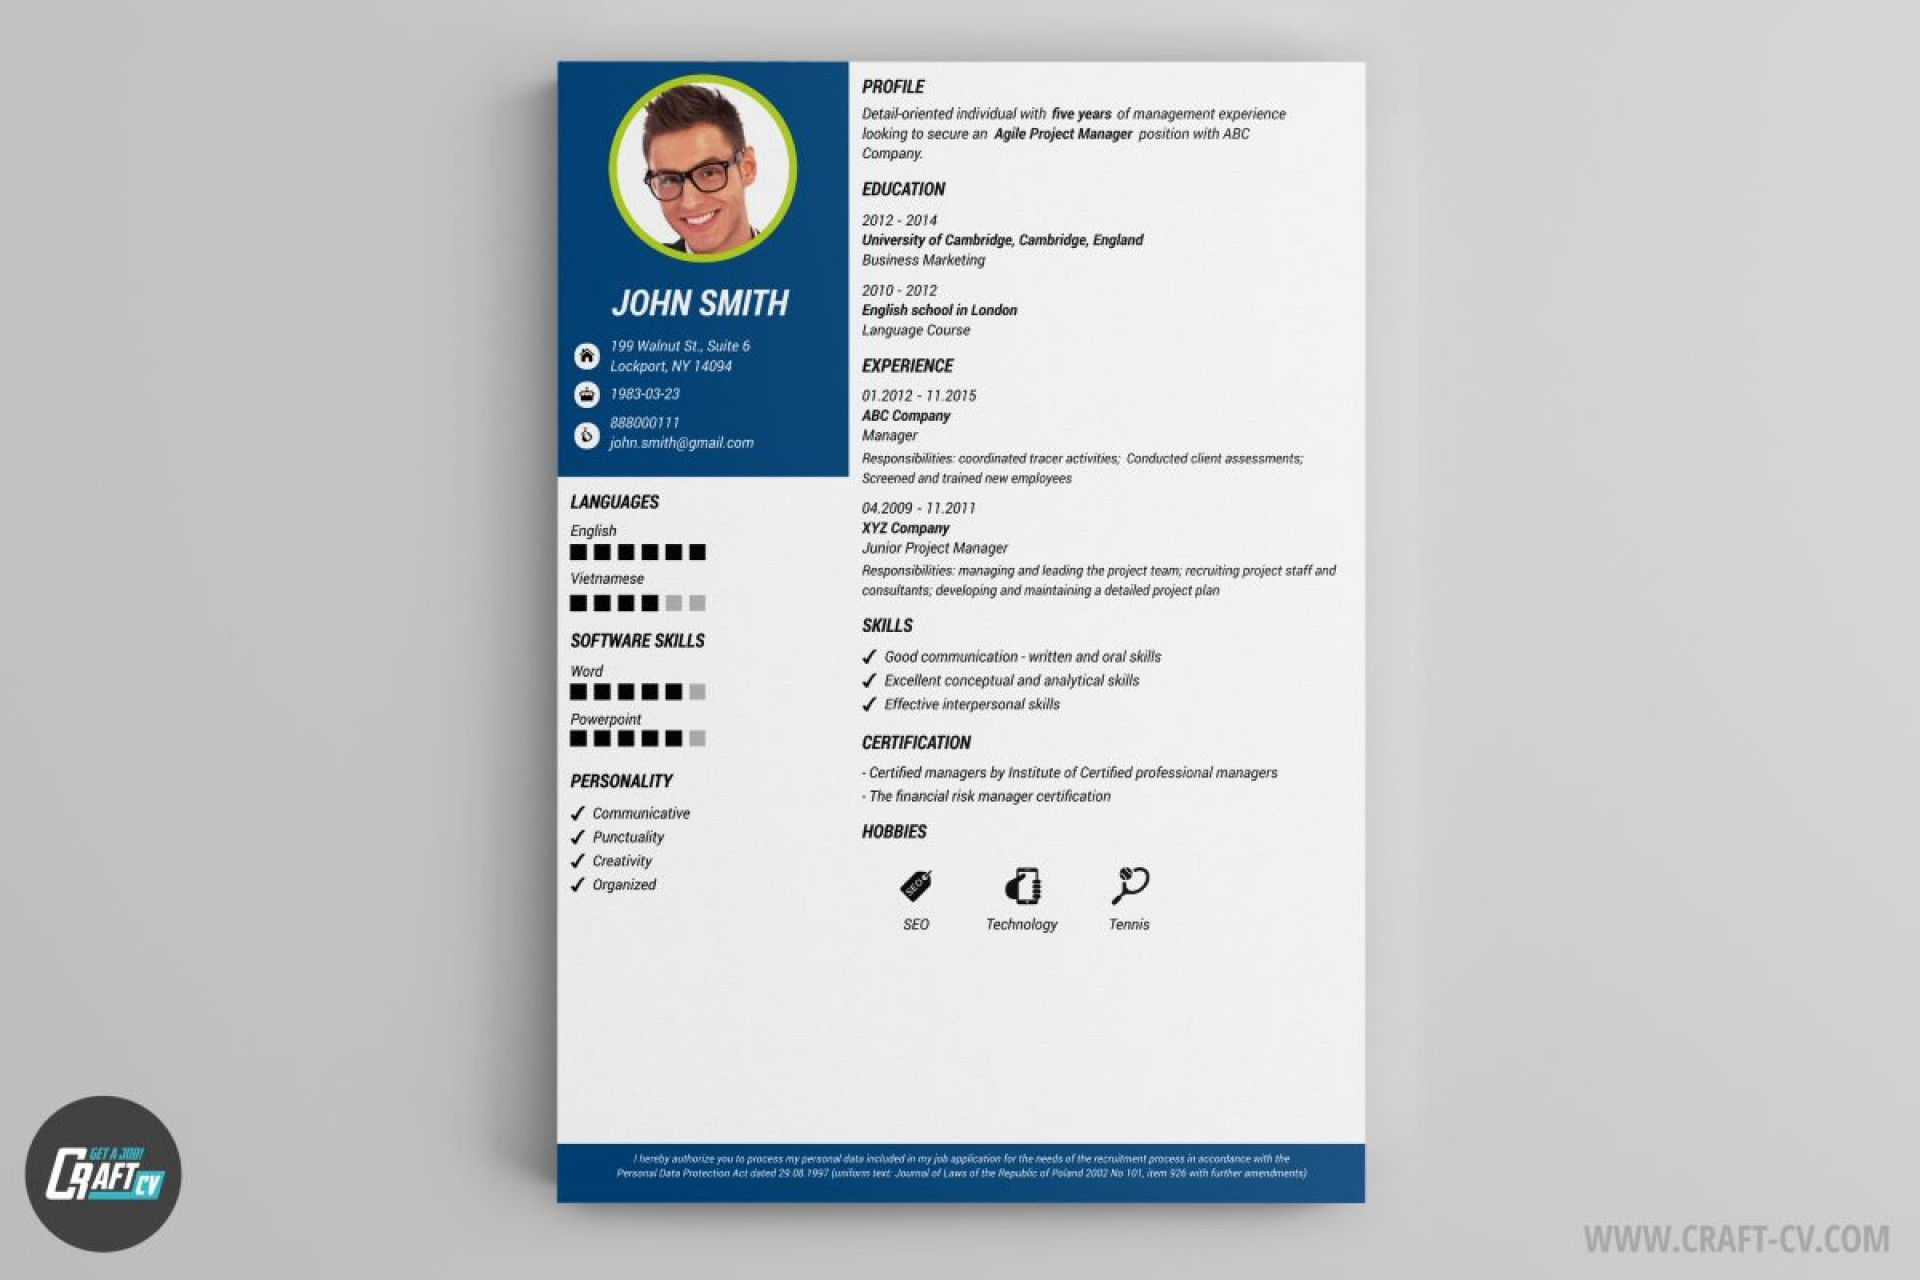 004 Amazing Create Resume Online Free Template Image 1920